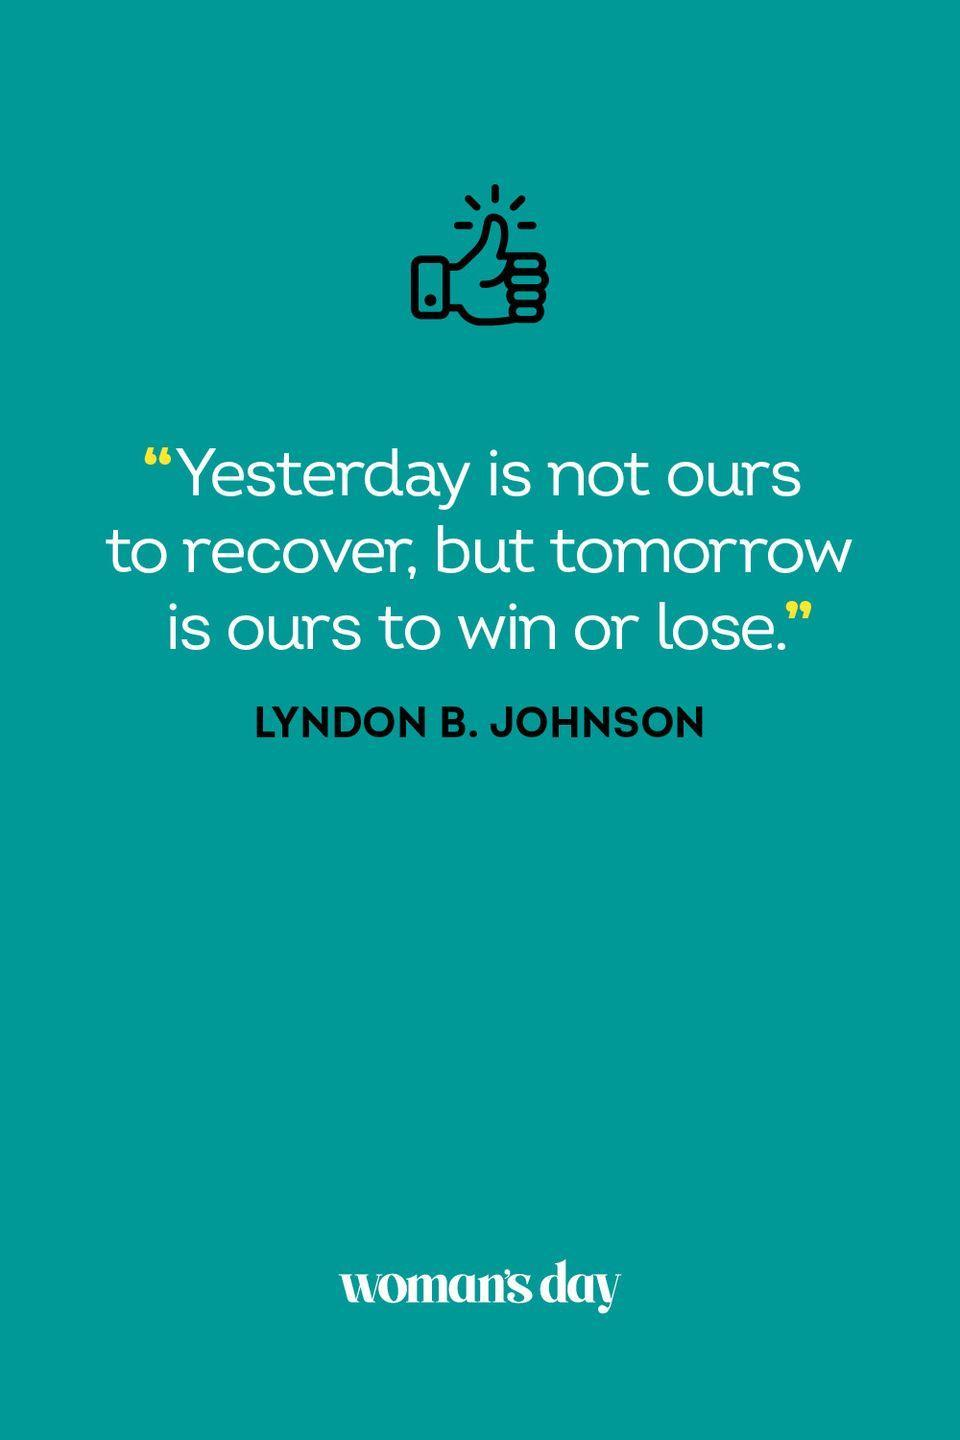 <p>Yesterday is not ours to recover, but tomorrow is ours to win or lose.</p>